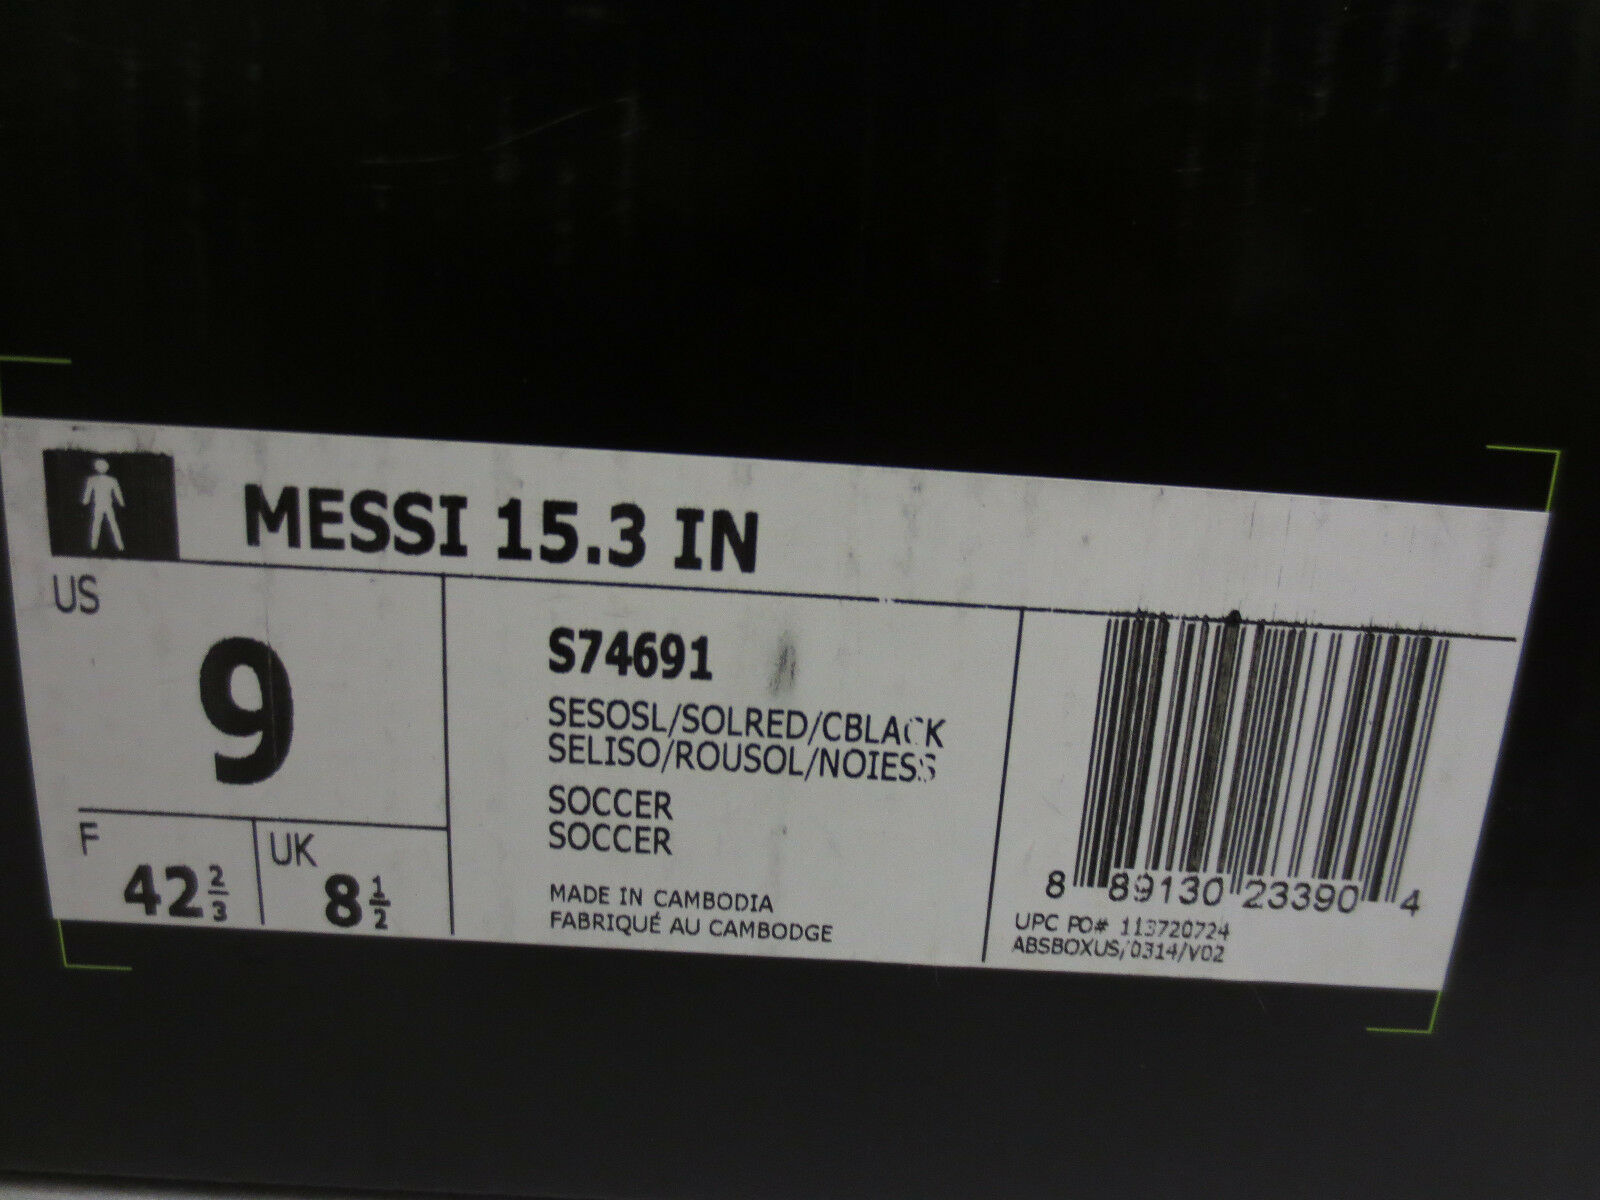 ADIDAS SOCCER MESSI 15.3 IN MENS SOCCER ADIDAS CLEATS SIZE 9 RUNNING LIGHT NEW INDOOR S74691 6034a6